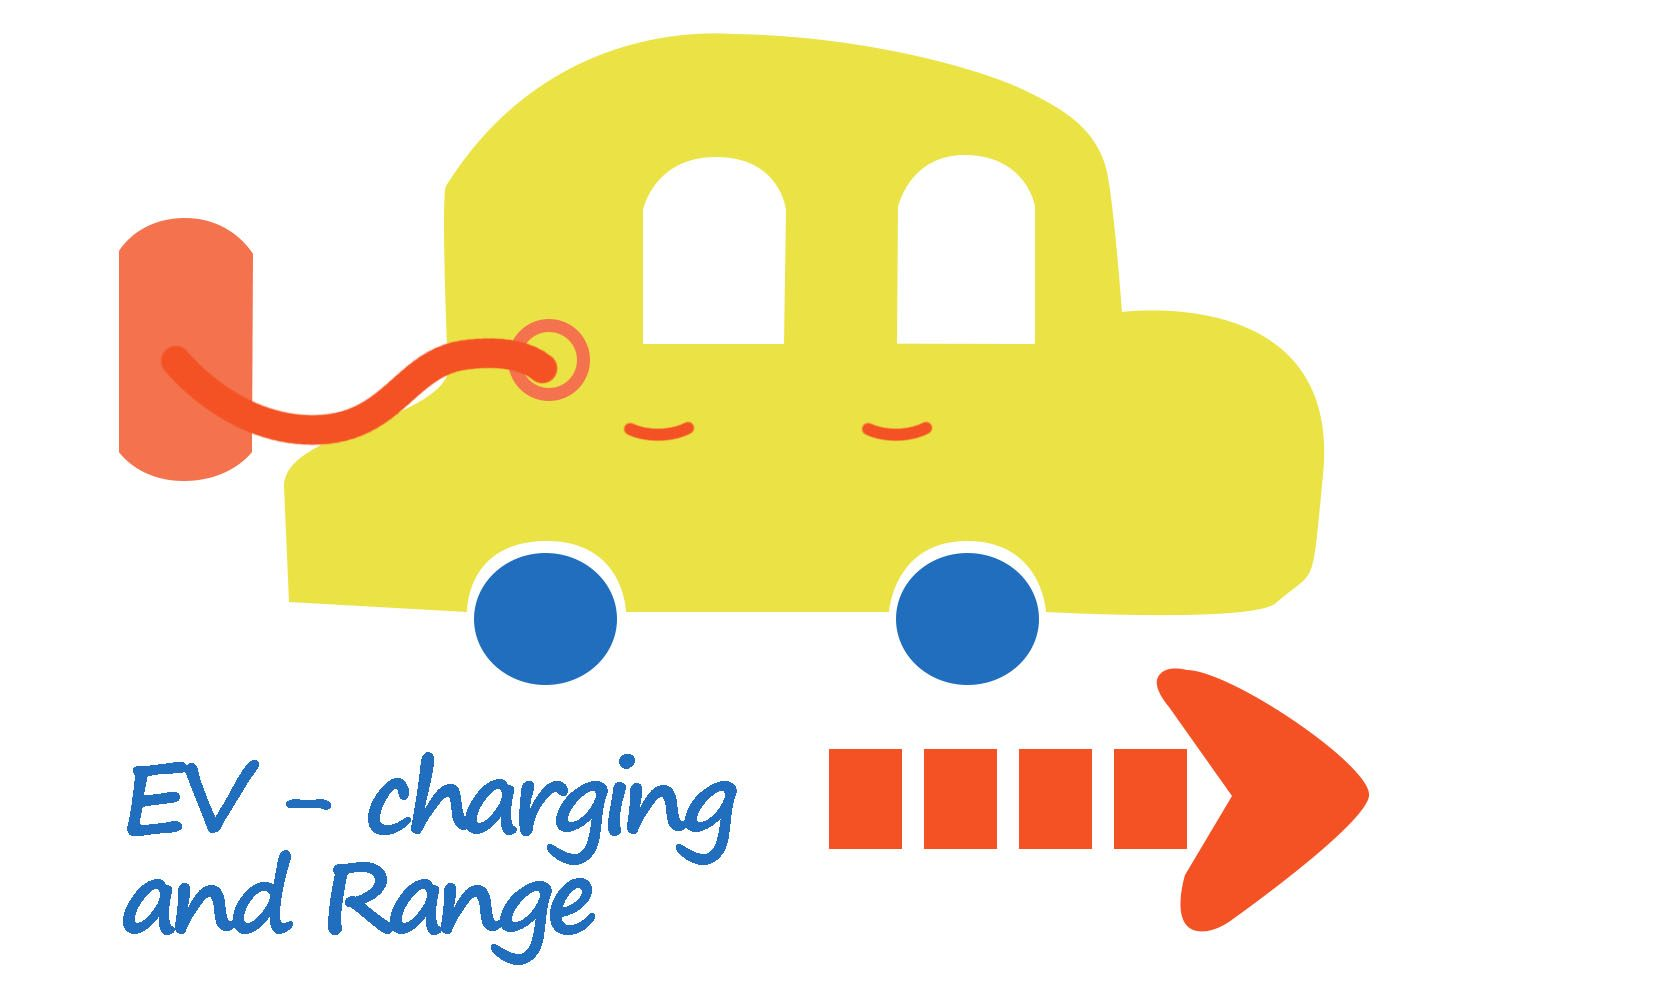 Electric Vehicle Charging and Range